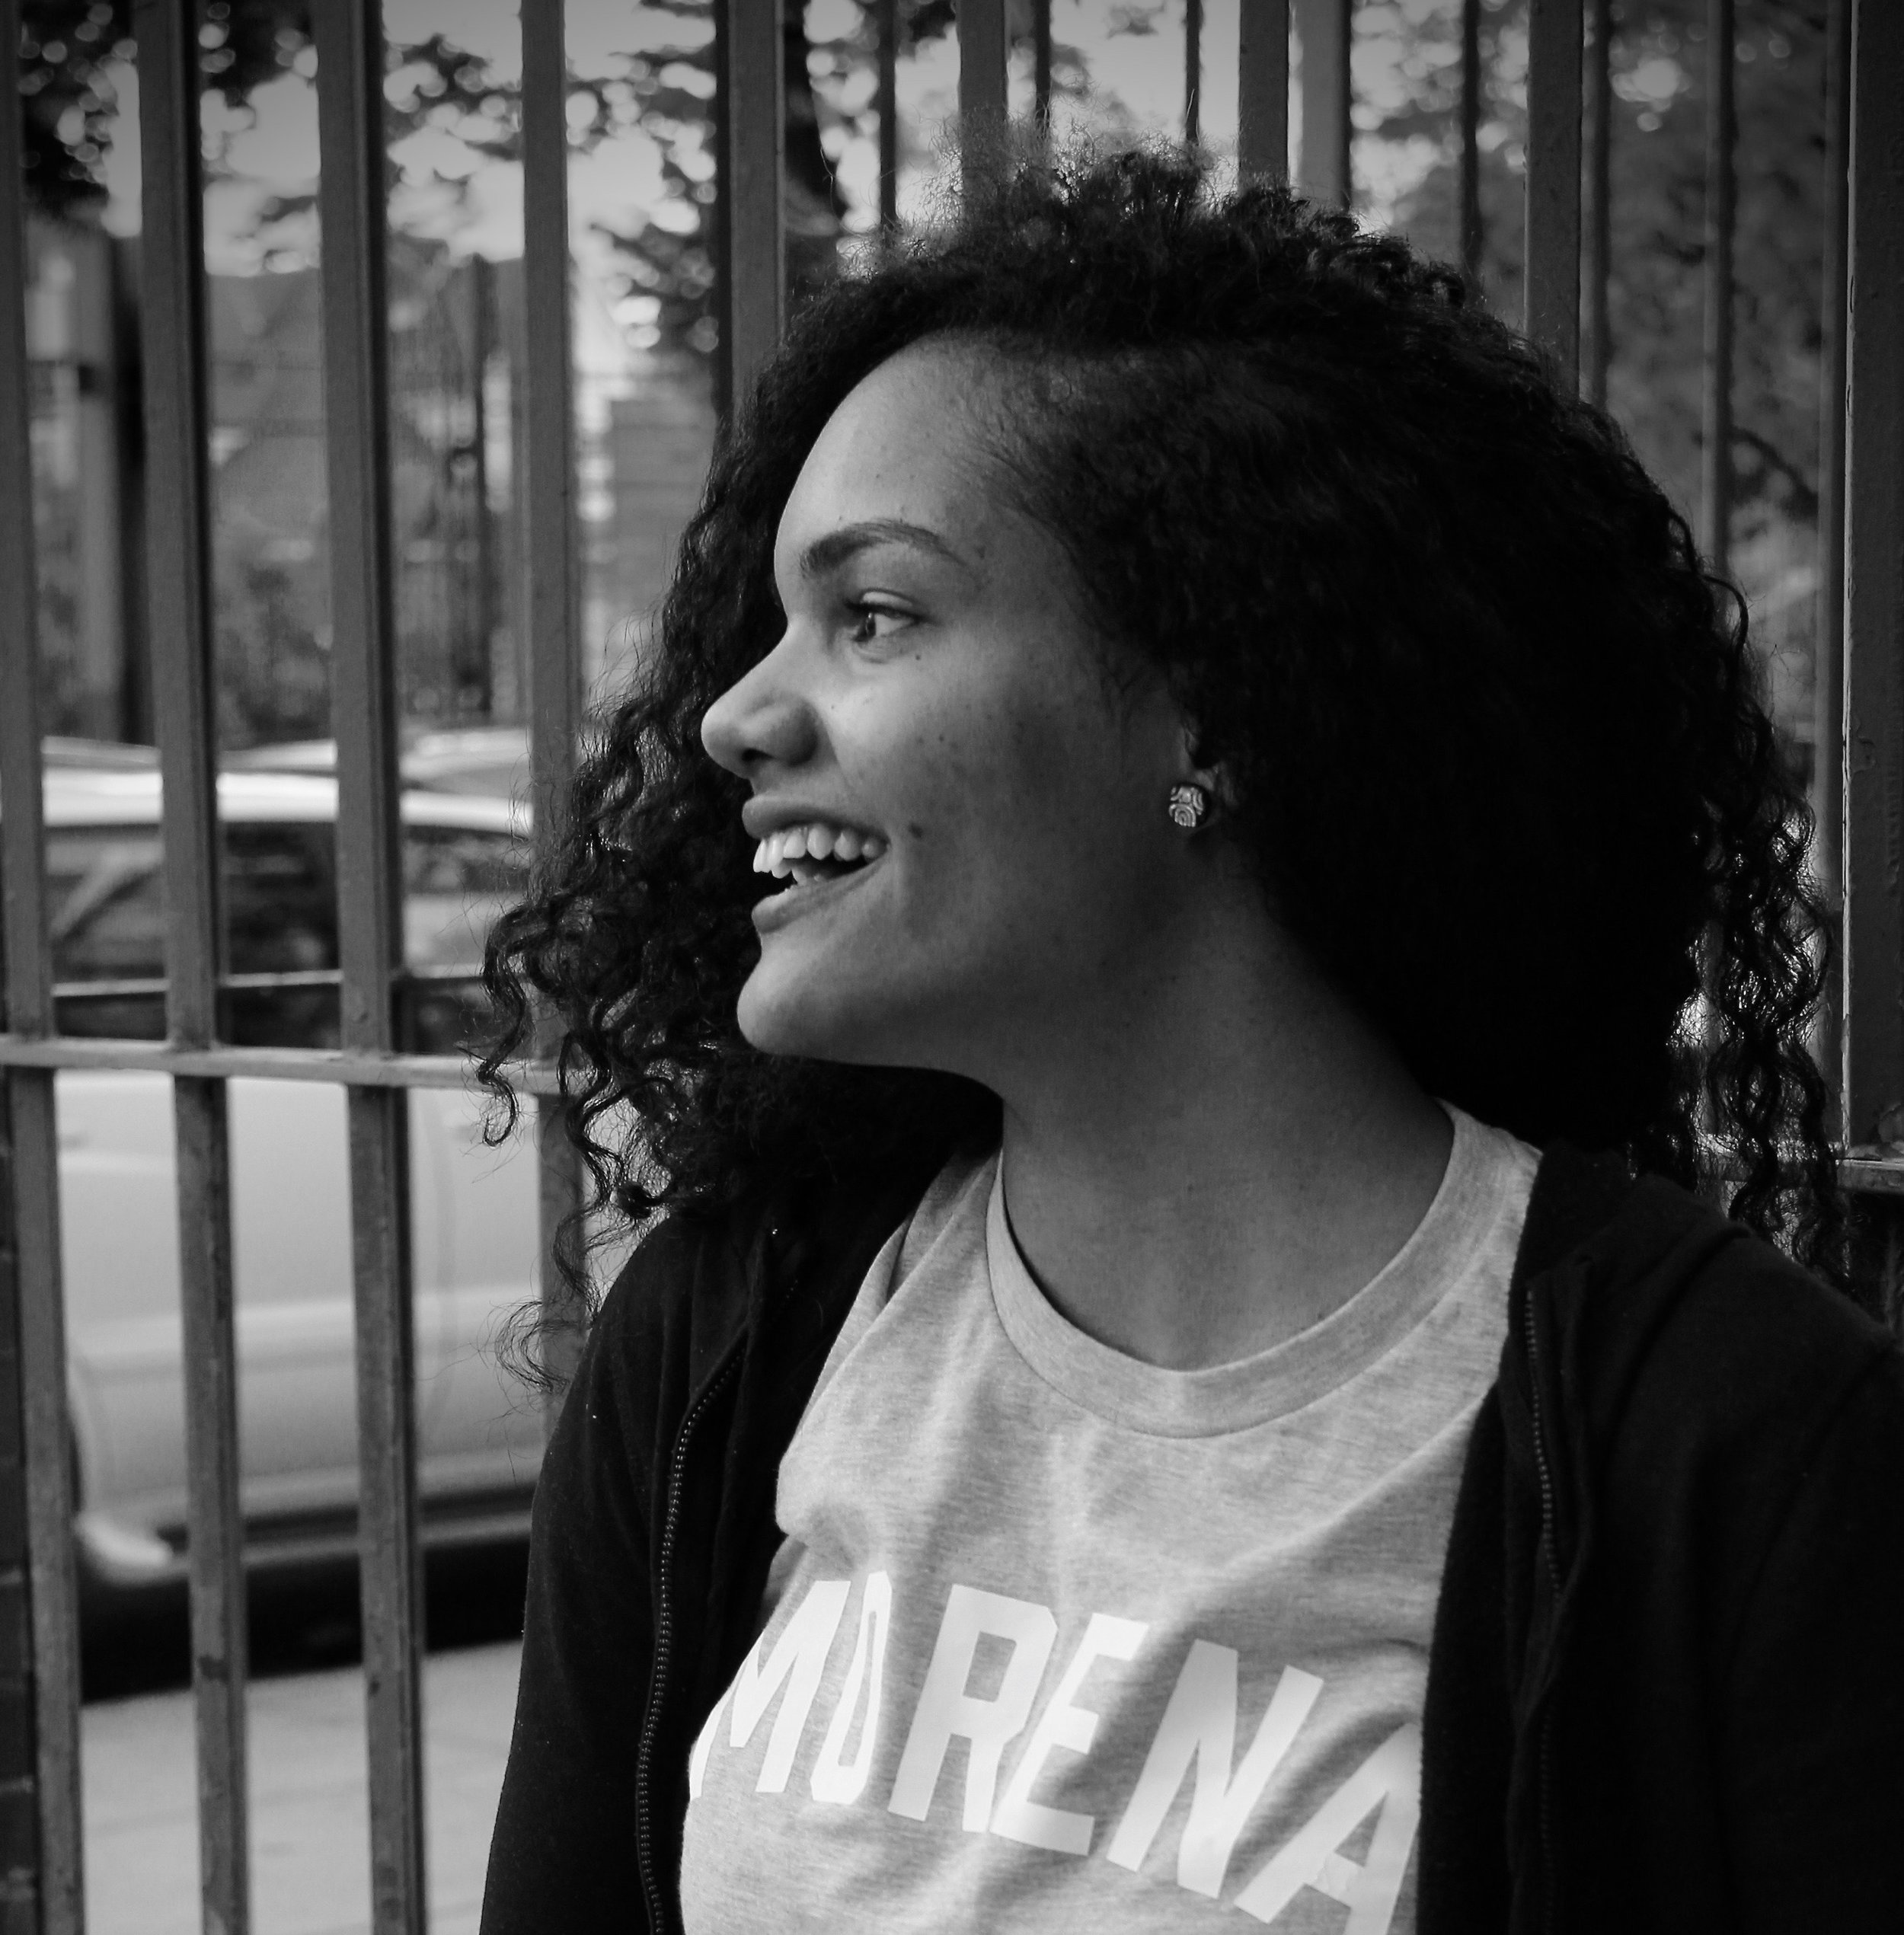 About The Author - Danyeli Rodriguez Del Orbe, is an Afro-Dominican spoken word artist and immigrant rights advocate raised in The Bronx. Her poetry sheds light on issues within the Afro-Dominican diaspora and the immigrant experience. She uses poetry and writing as means of resistance and visibility for Dominican immigrants struggling with issues of race, immigration status, and gender. In addition, she's a community fellow and legal representative in charge of helping low income folks with their immigration cases and legalization.